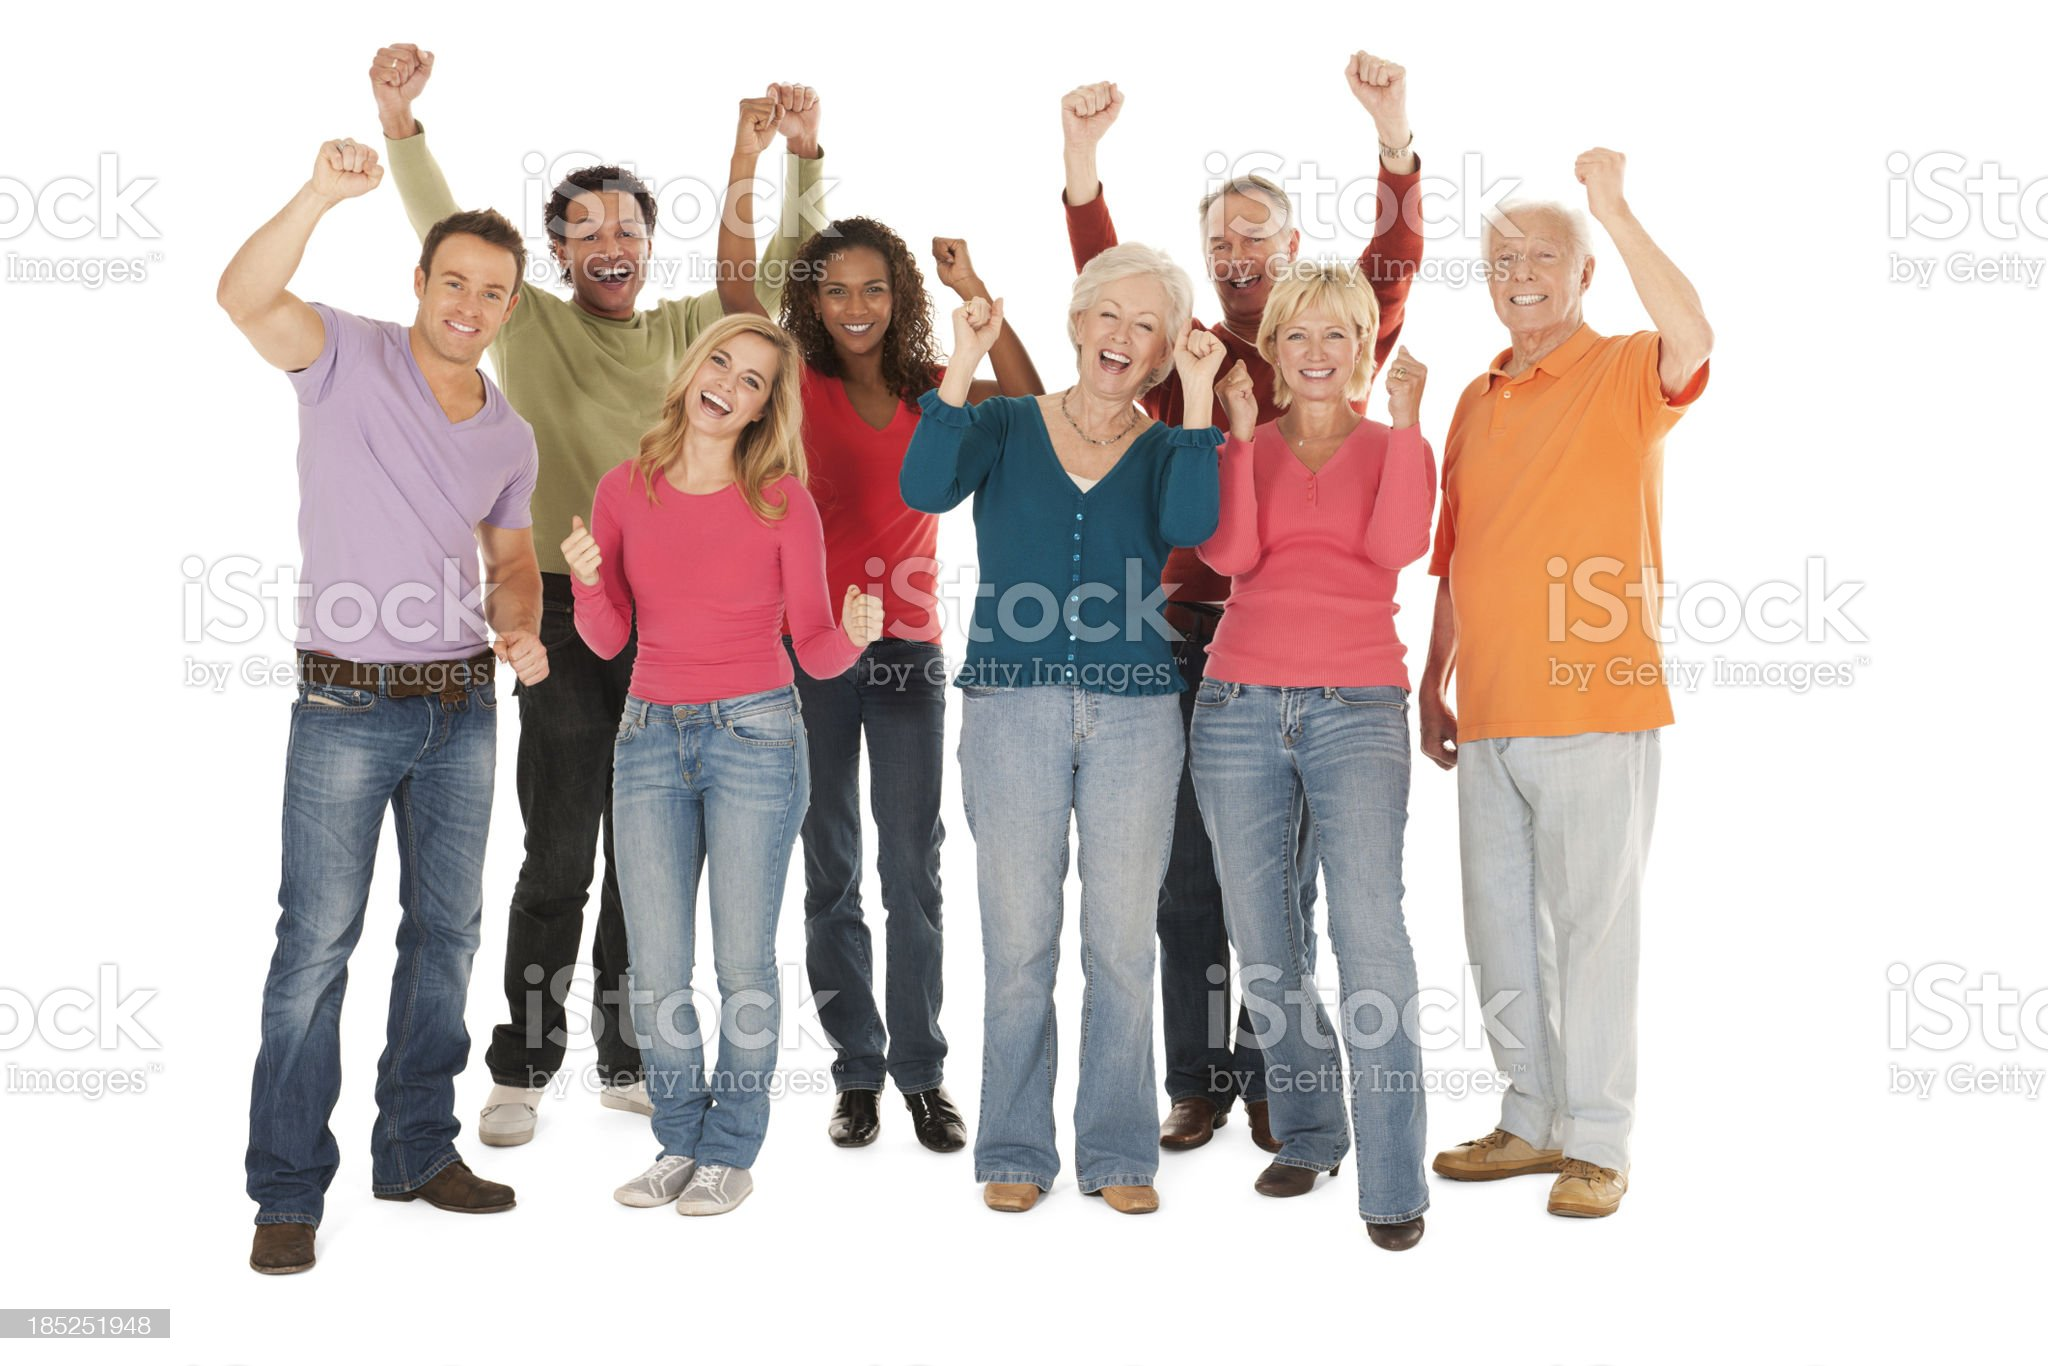 People Cheering royalty-free stock photo